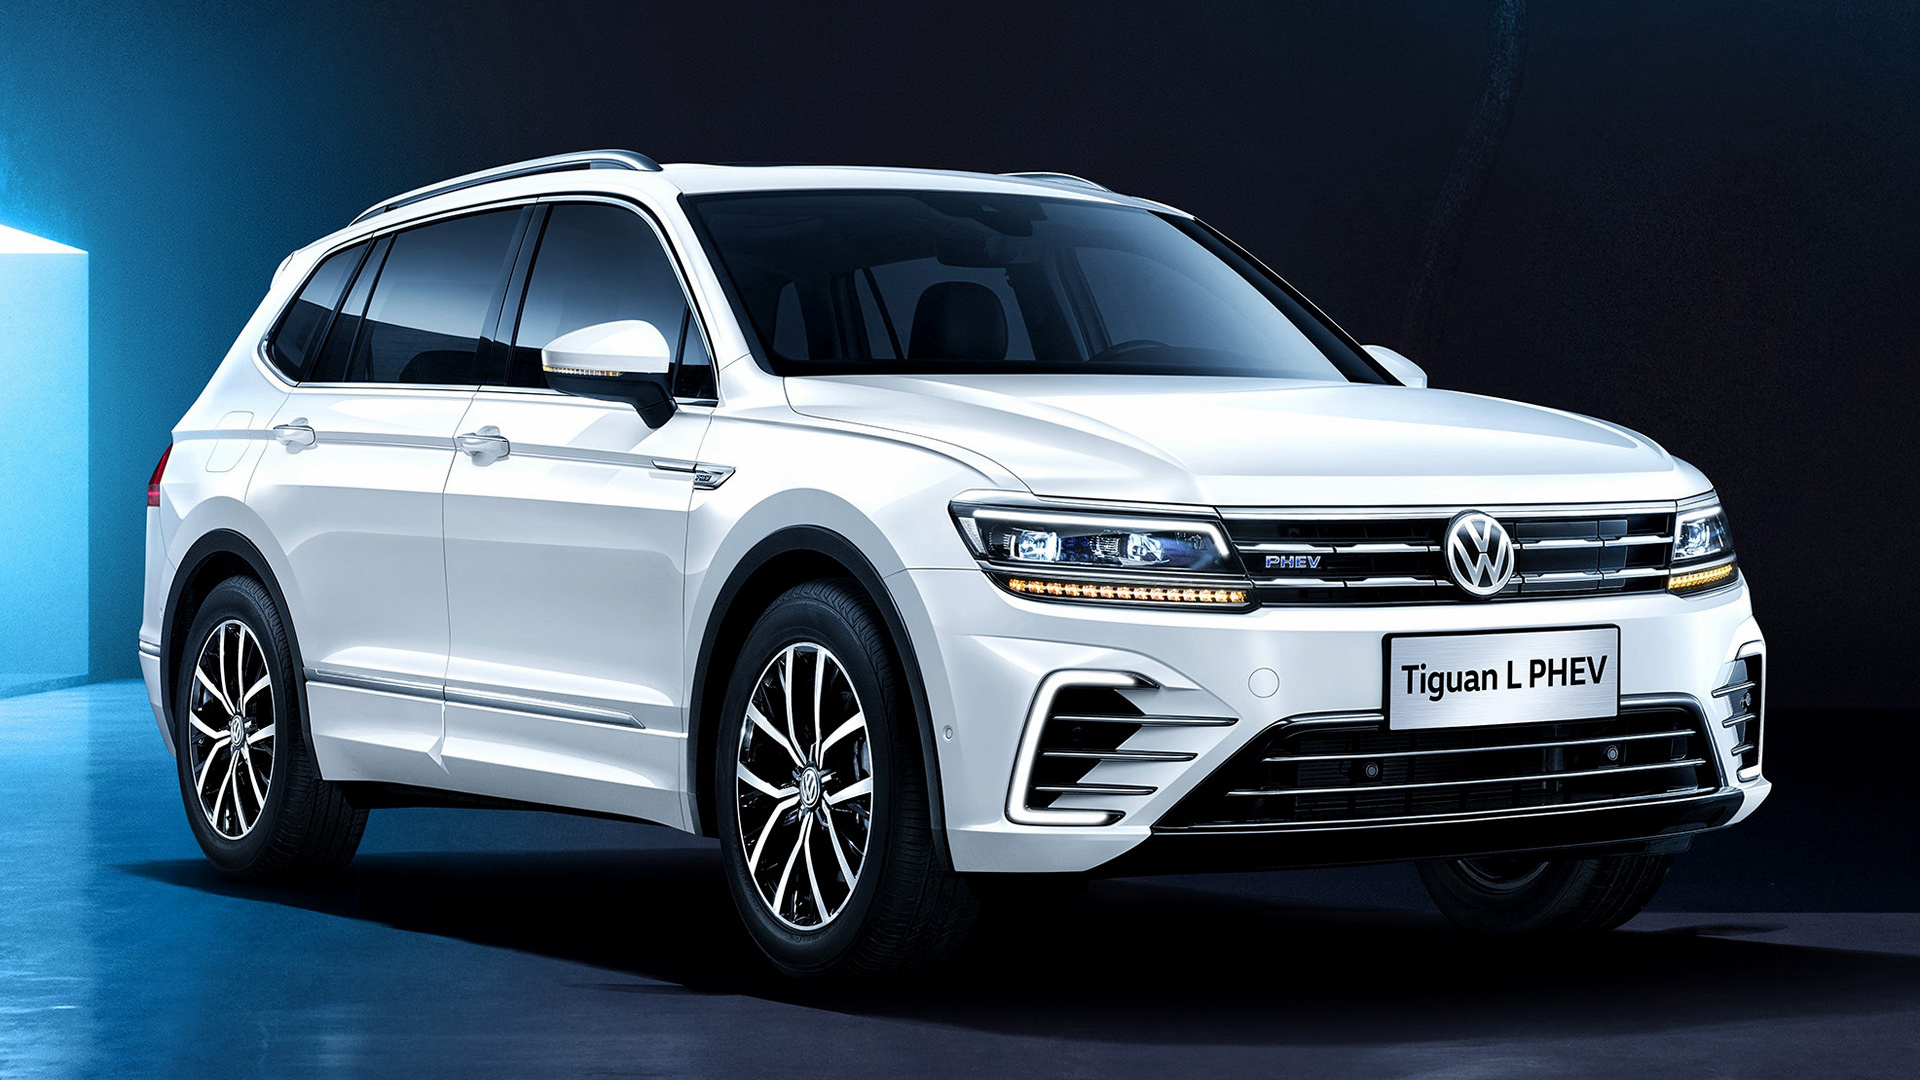 2018 Volkswagen Tiguan L PHEV (CN) - Wallpapers and HD ...